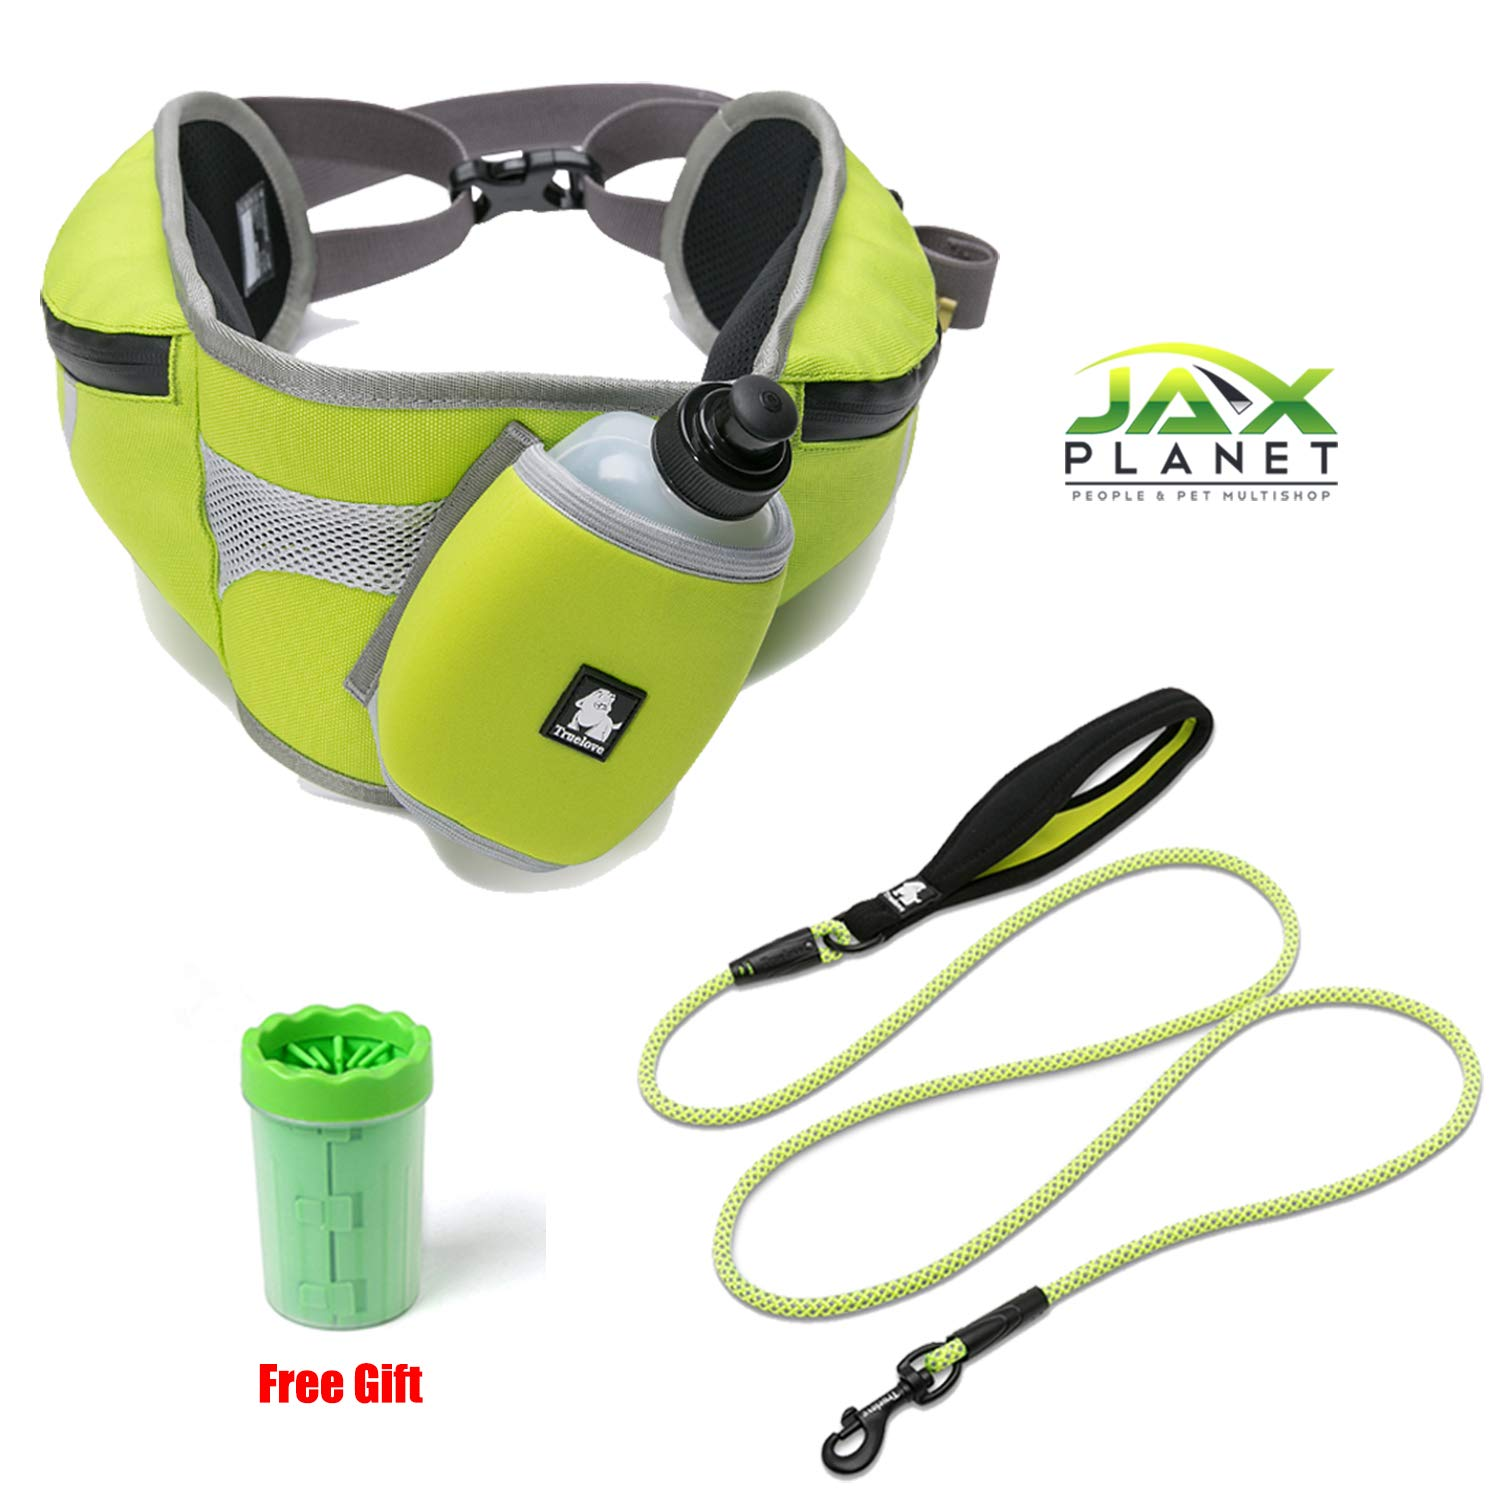 Free Small Hipbelt Dog Leash Accessory Set[TLF1G5] FreeGift+Stylish Sturdy Safe 3M Reflective, Hands Free Trekking Hip Belt & Pet Leash for Small Medium Large Dogs (Hip Belt+Leash1-NeonYellow+Gift, Free Small)